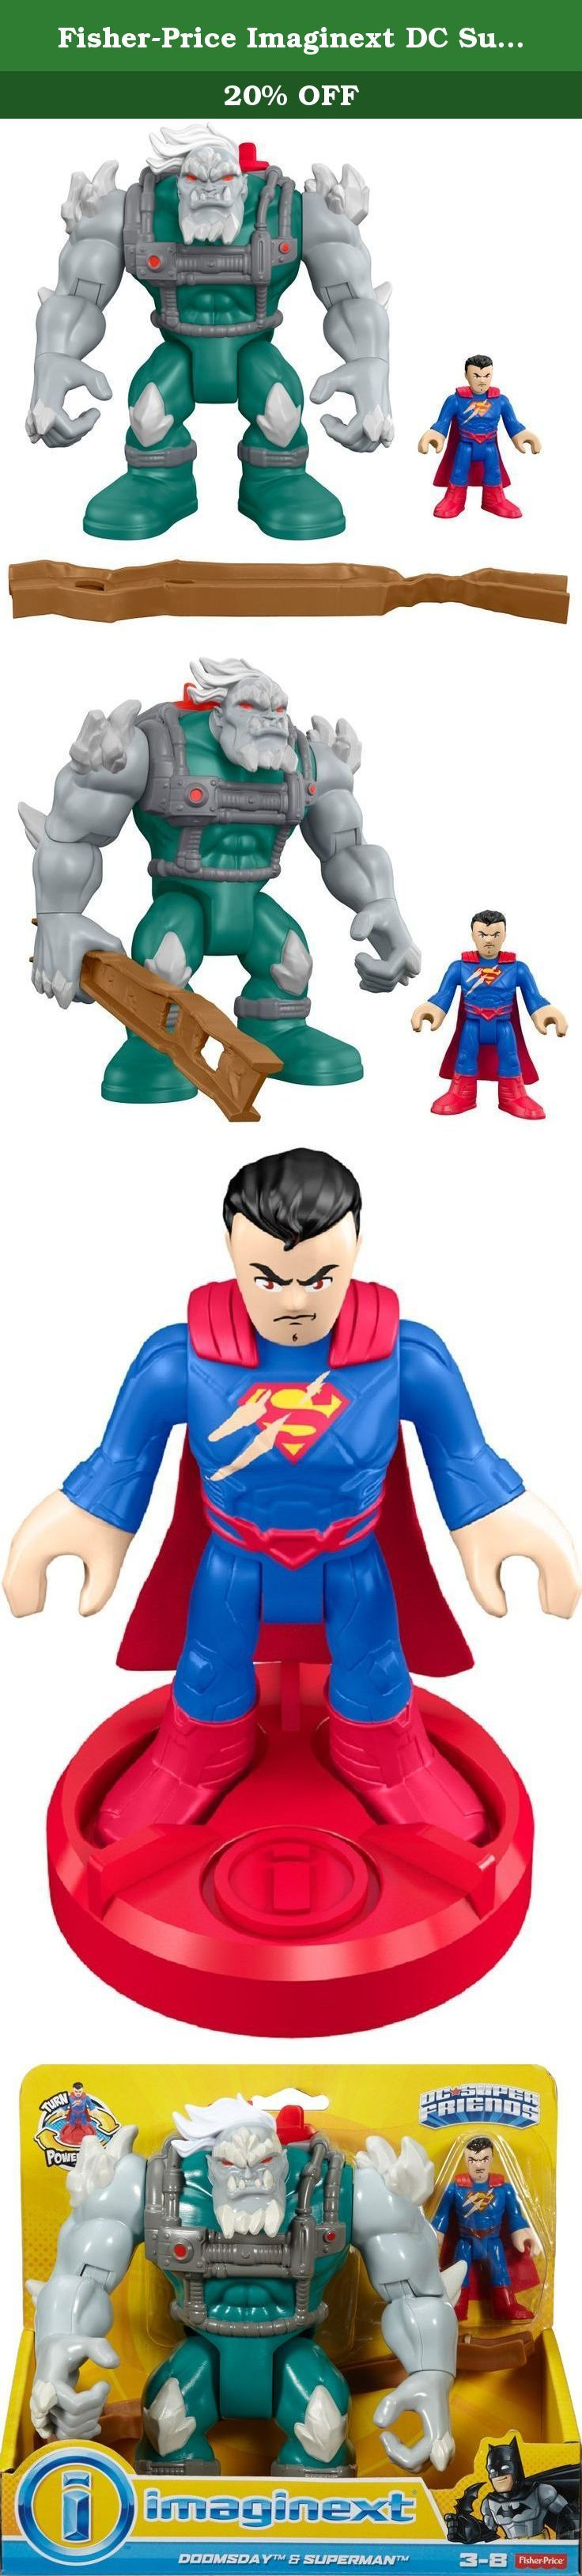 Fisher-Price Imaginext DC Super Friends Doomsday and Superman. Has the Man of Steel finally met his match? The result of Kryptonian genetic engineering gone wrong, Doomsday is a monster who's a real threat to Superman and Metropolis! Kids can create epic battles between these two DC Super Friends figures - with exciting Imaginext features to bring their stories to life. Just turn the Power Pad right to activate Doomsday punching action - and turn it left to have Doomsday swing the...